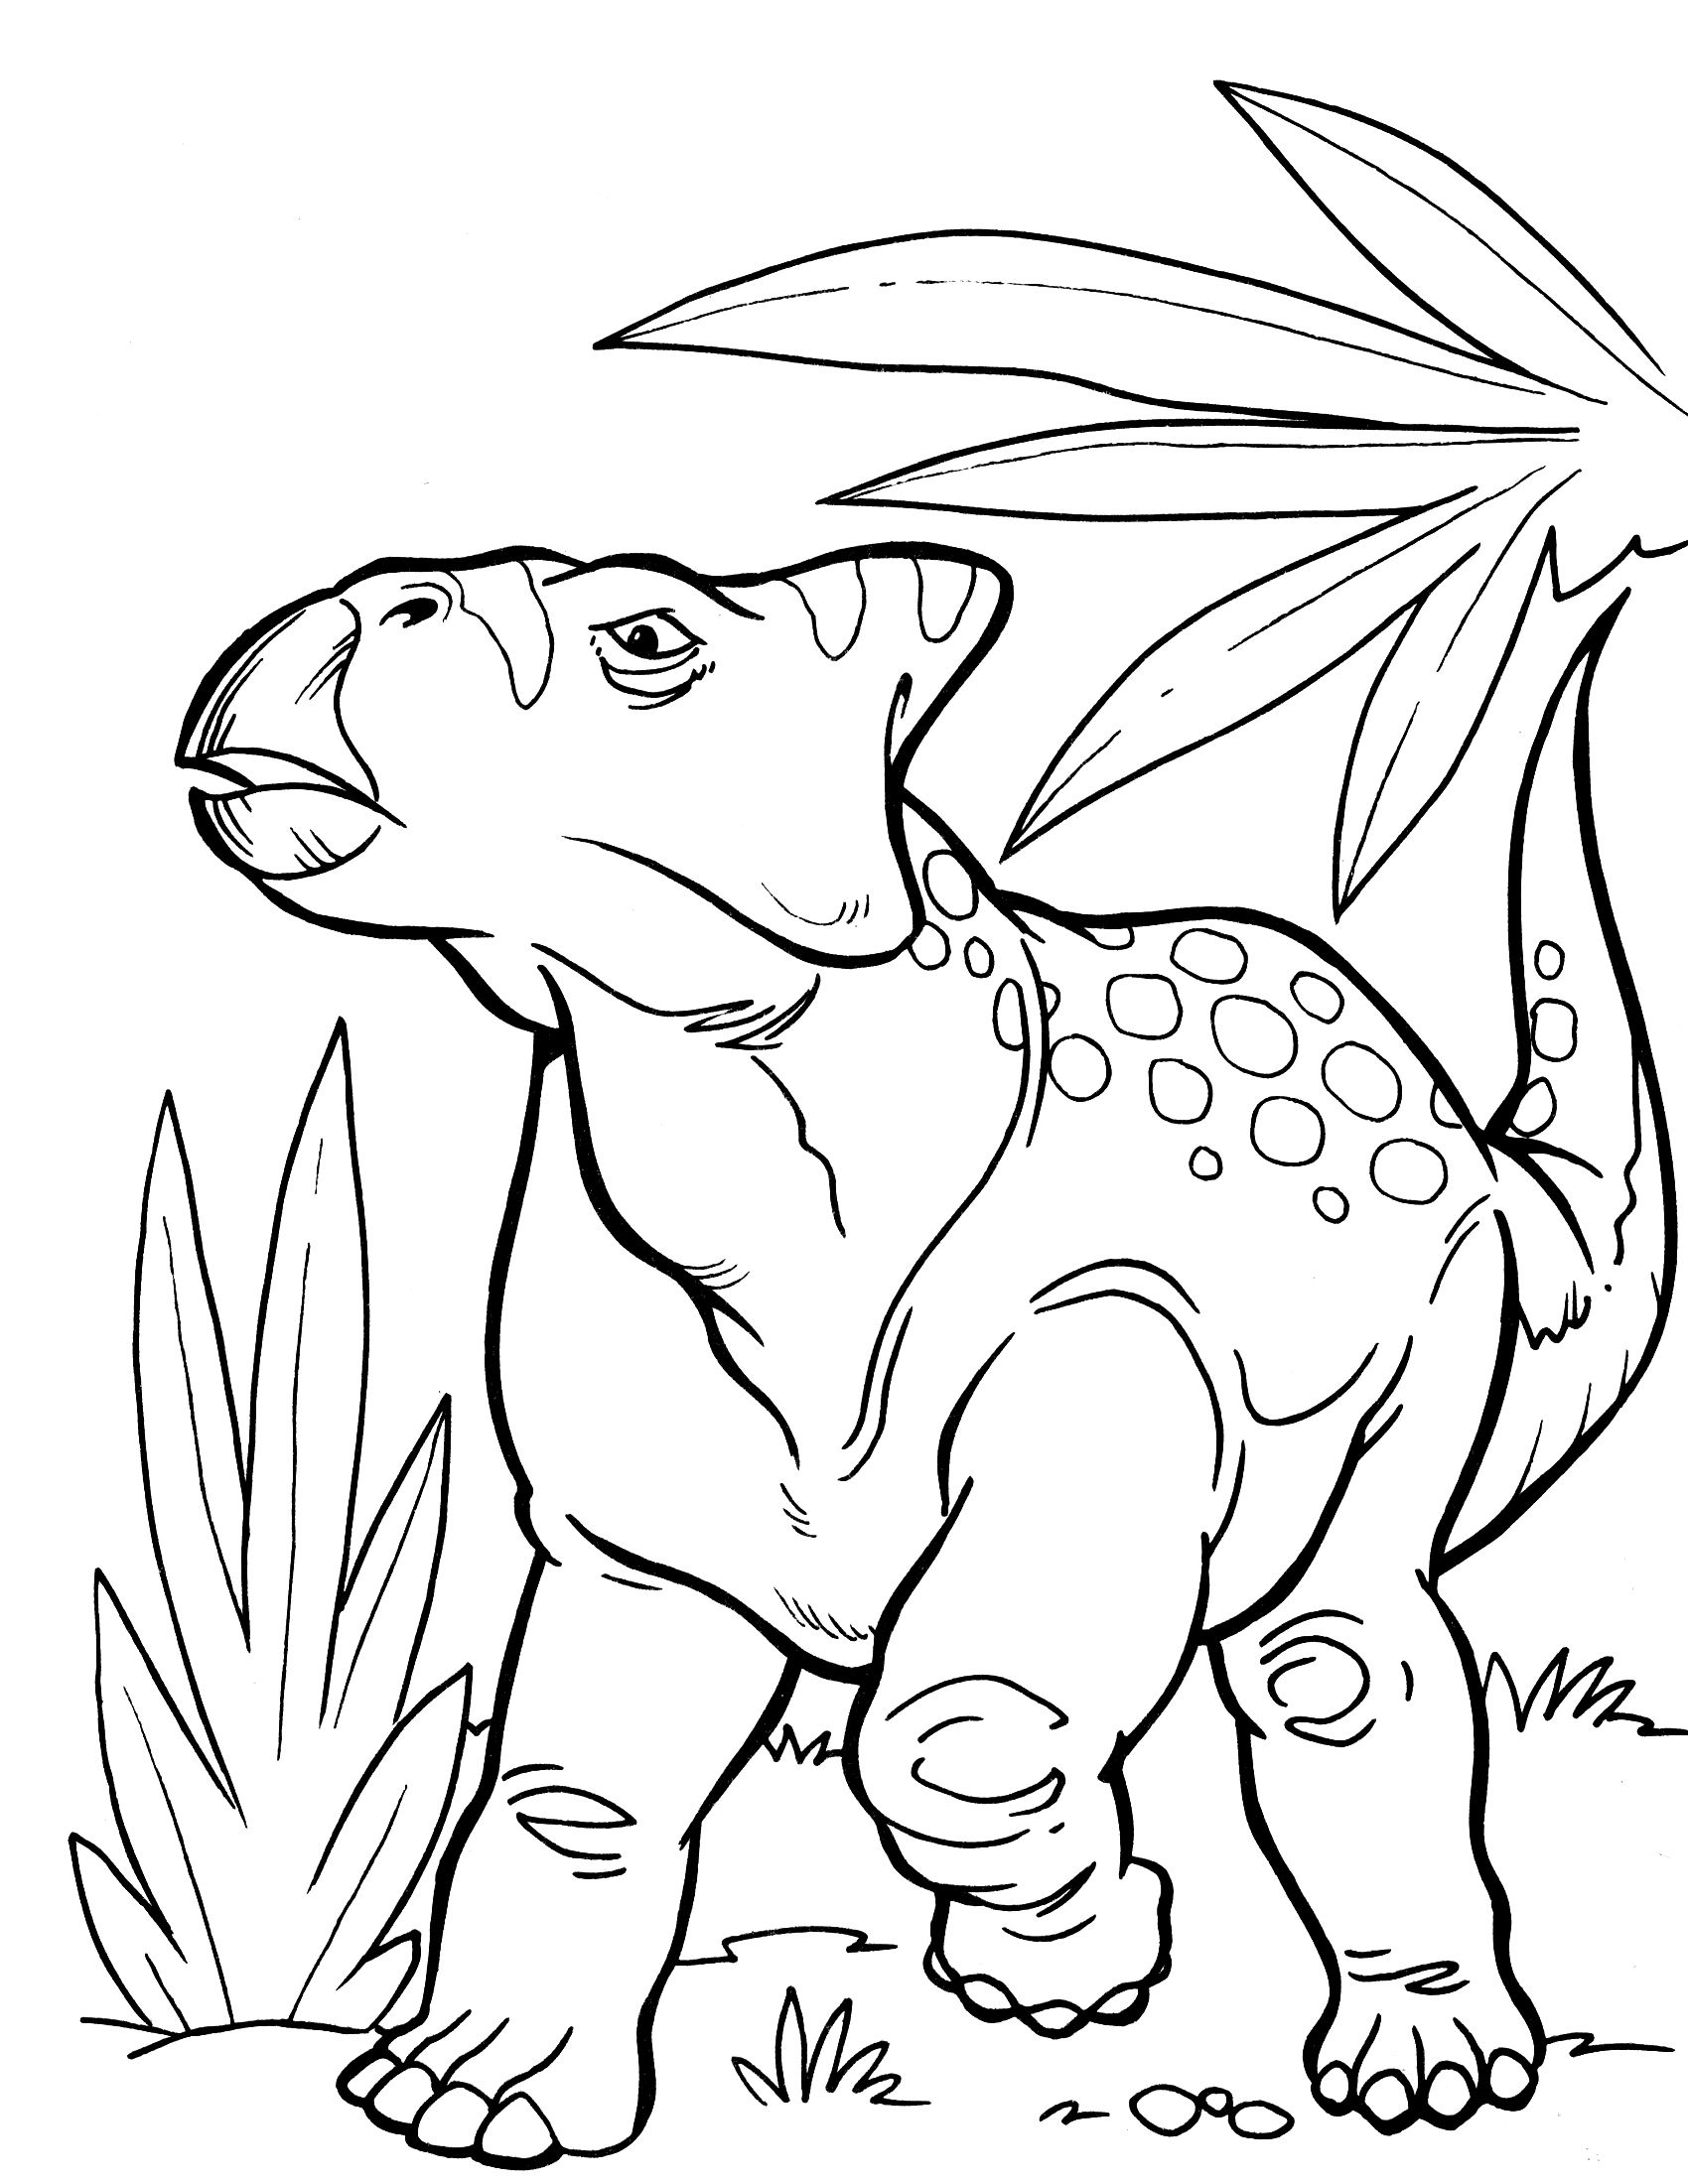 Dinosaur Coloring Pages Dinosaur Coloring Pages Coloring Pages Infinity Drawings